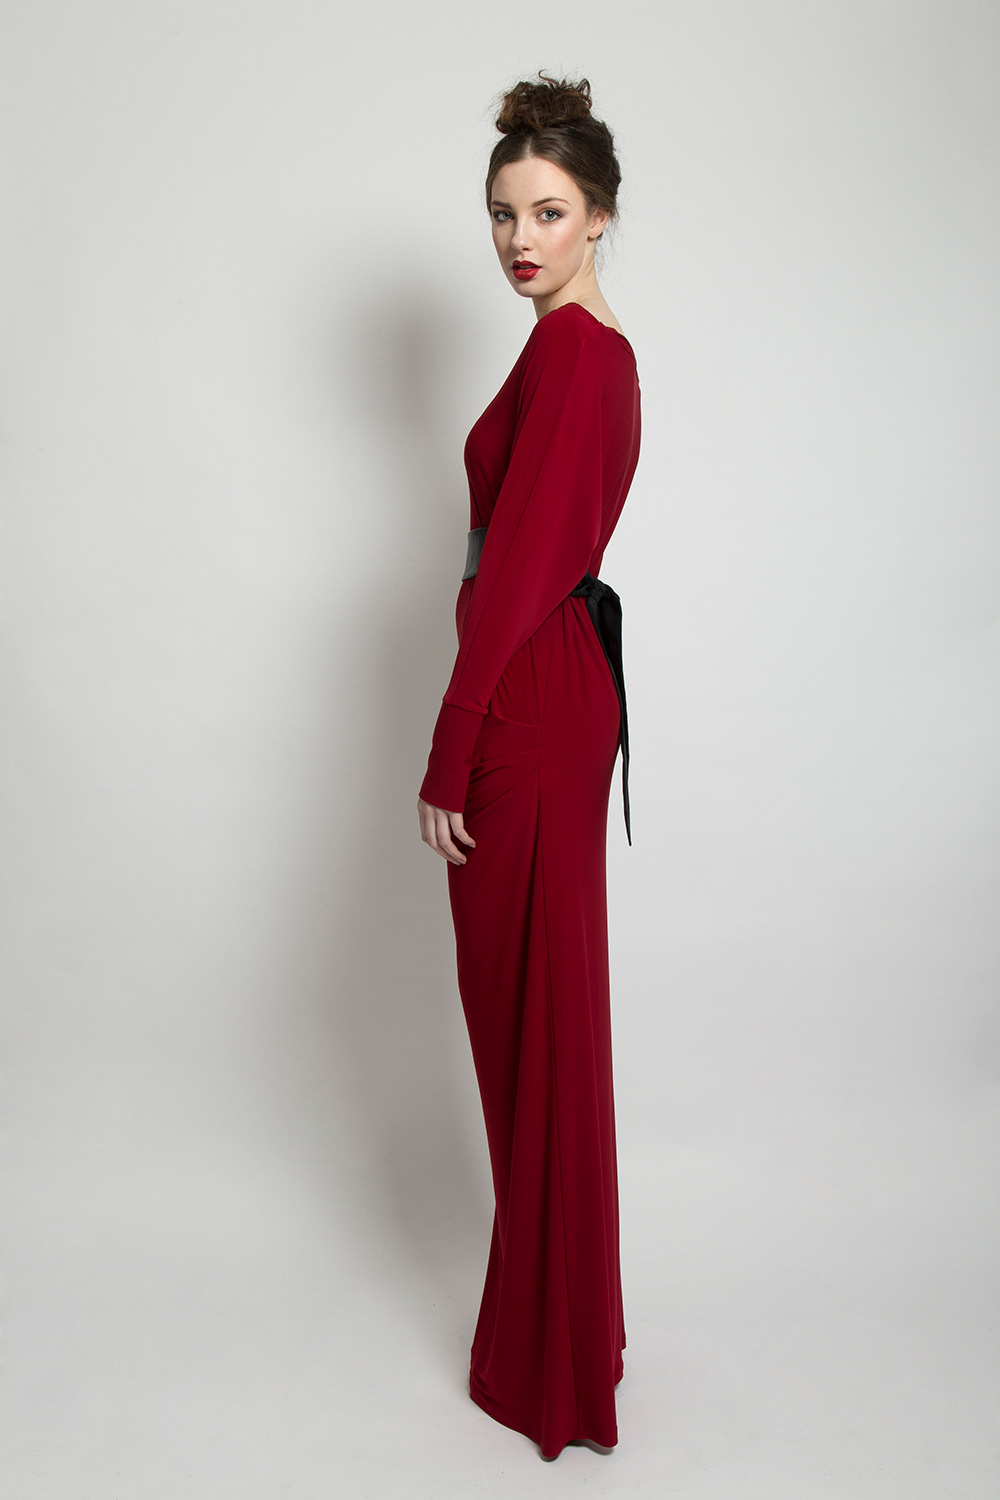 AW14-Berry-Red-Jersey-Gown.jpg